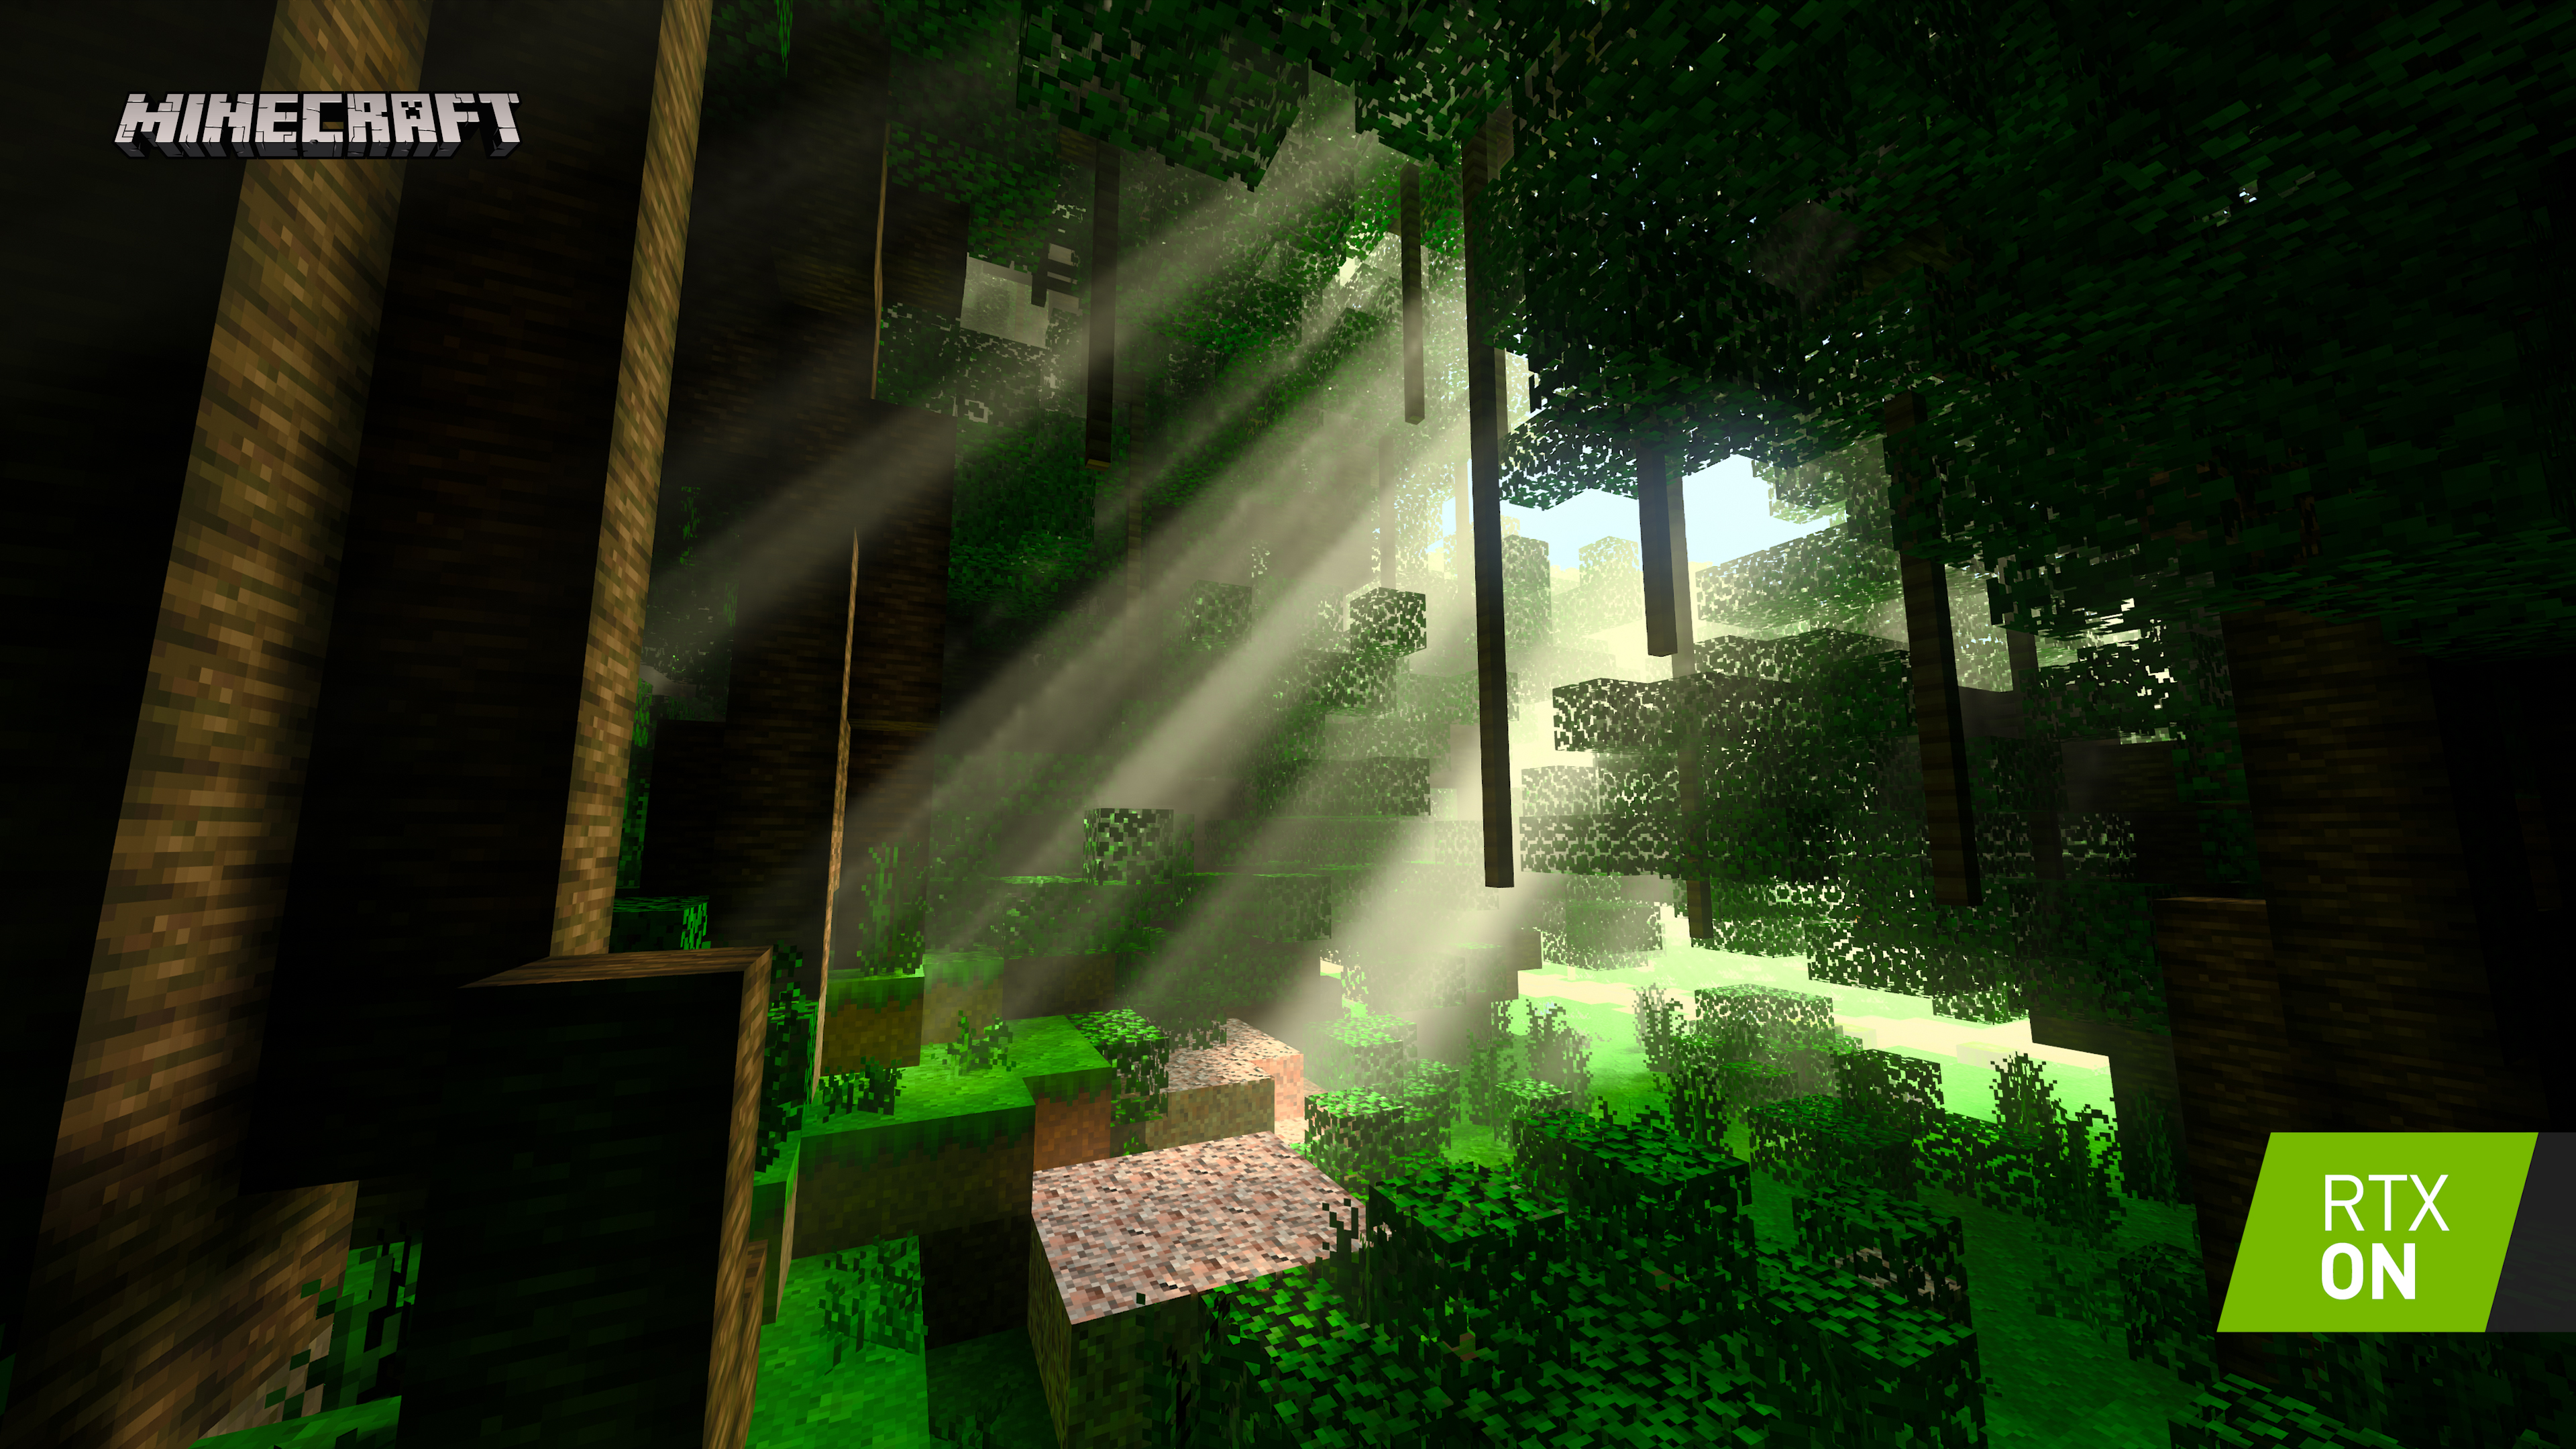 minecraft-with-rtx-beta-of-temples-and-t